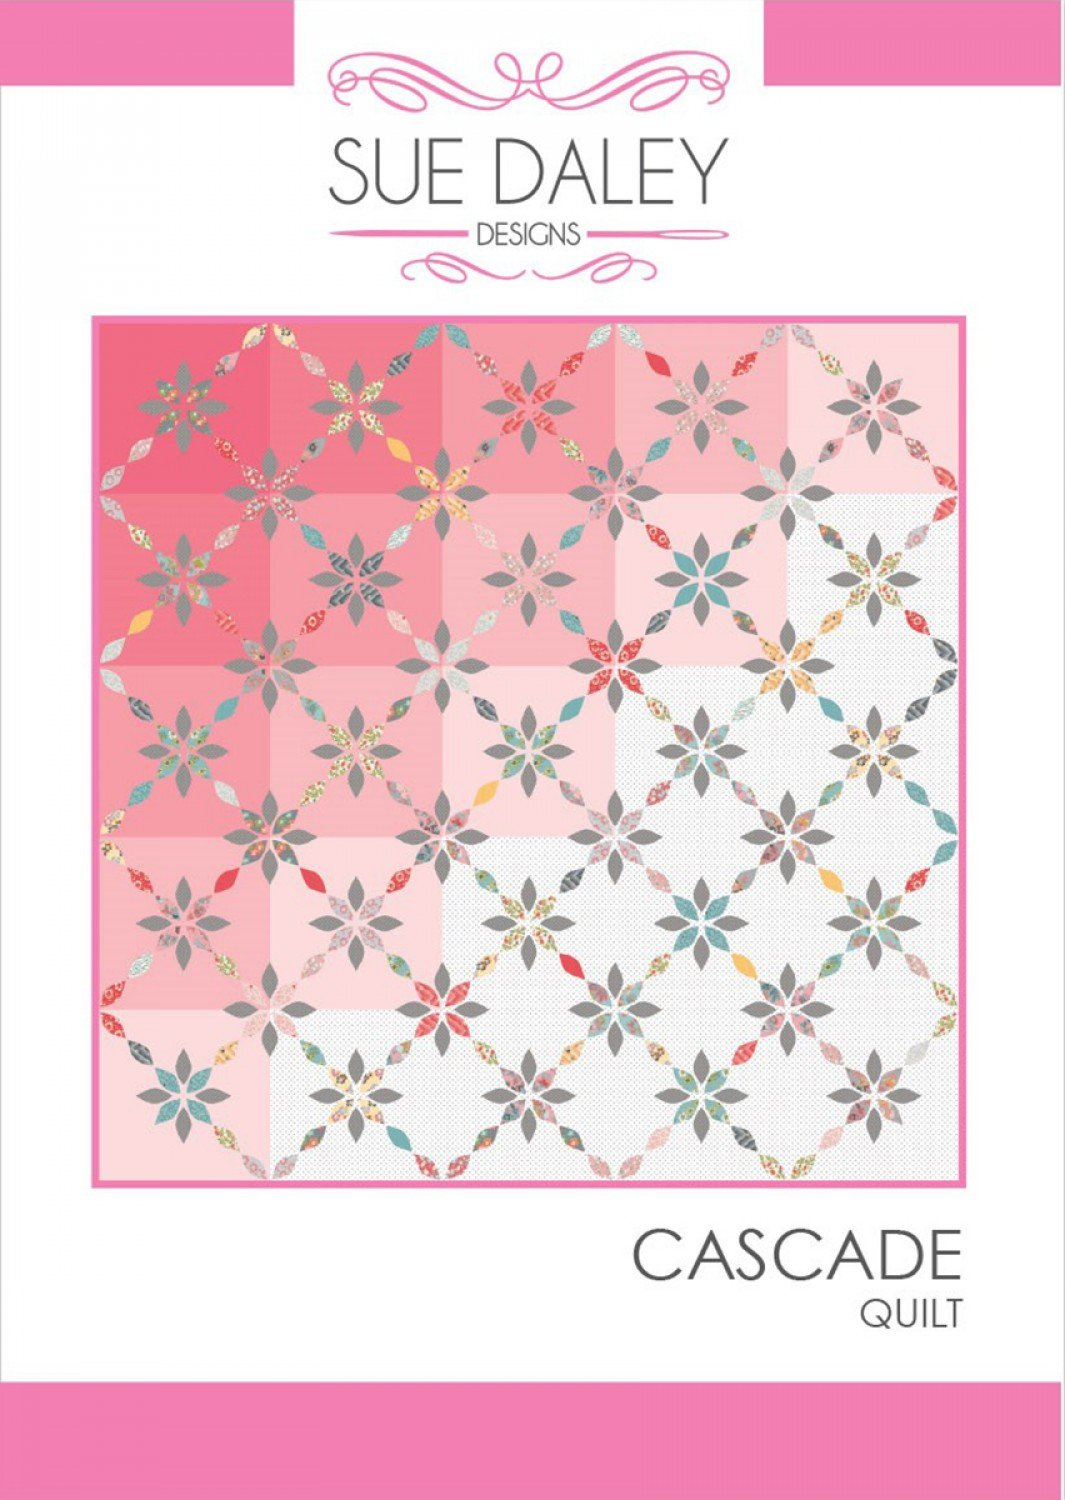 Cascade Quilt Pattern by Sue Daley Designs